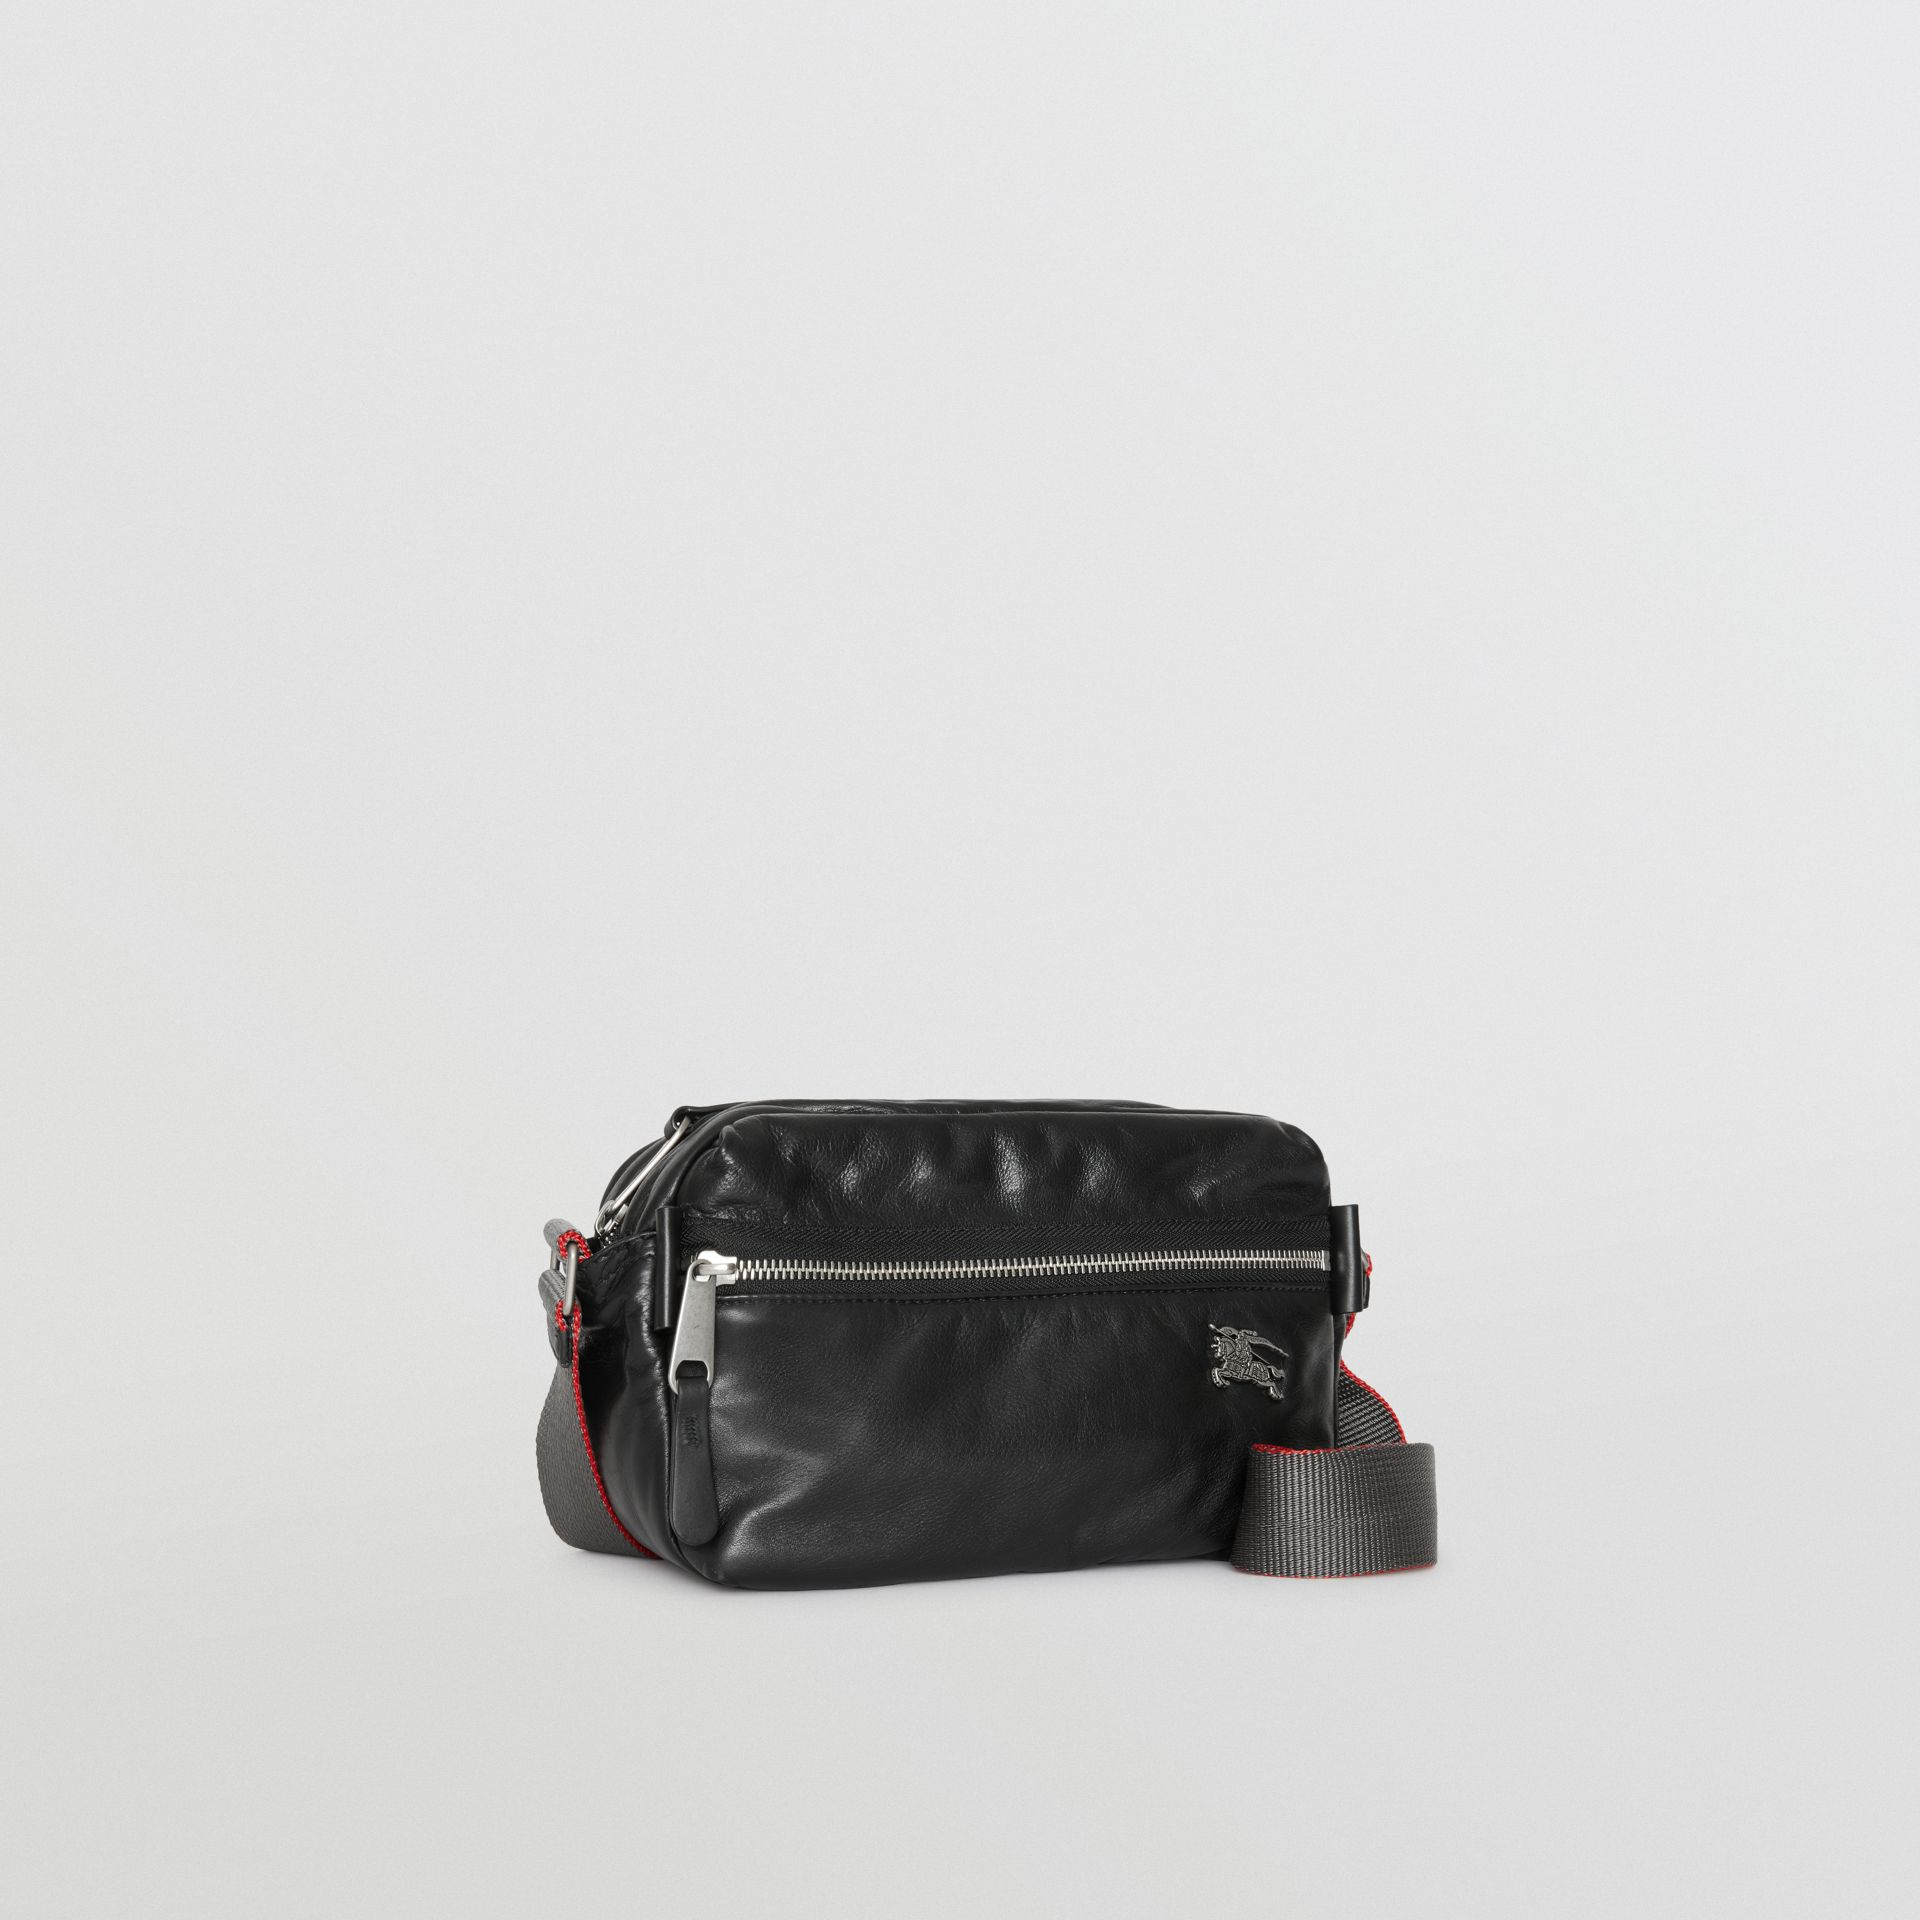 EKD Nappa Leather Crossbody Bag in Black - Men | Burberry United States - gallery image 4